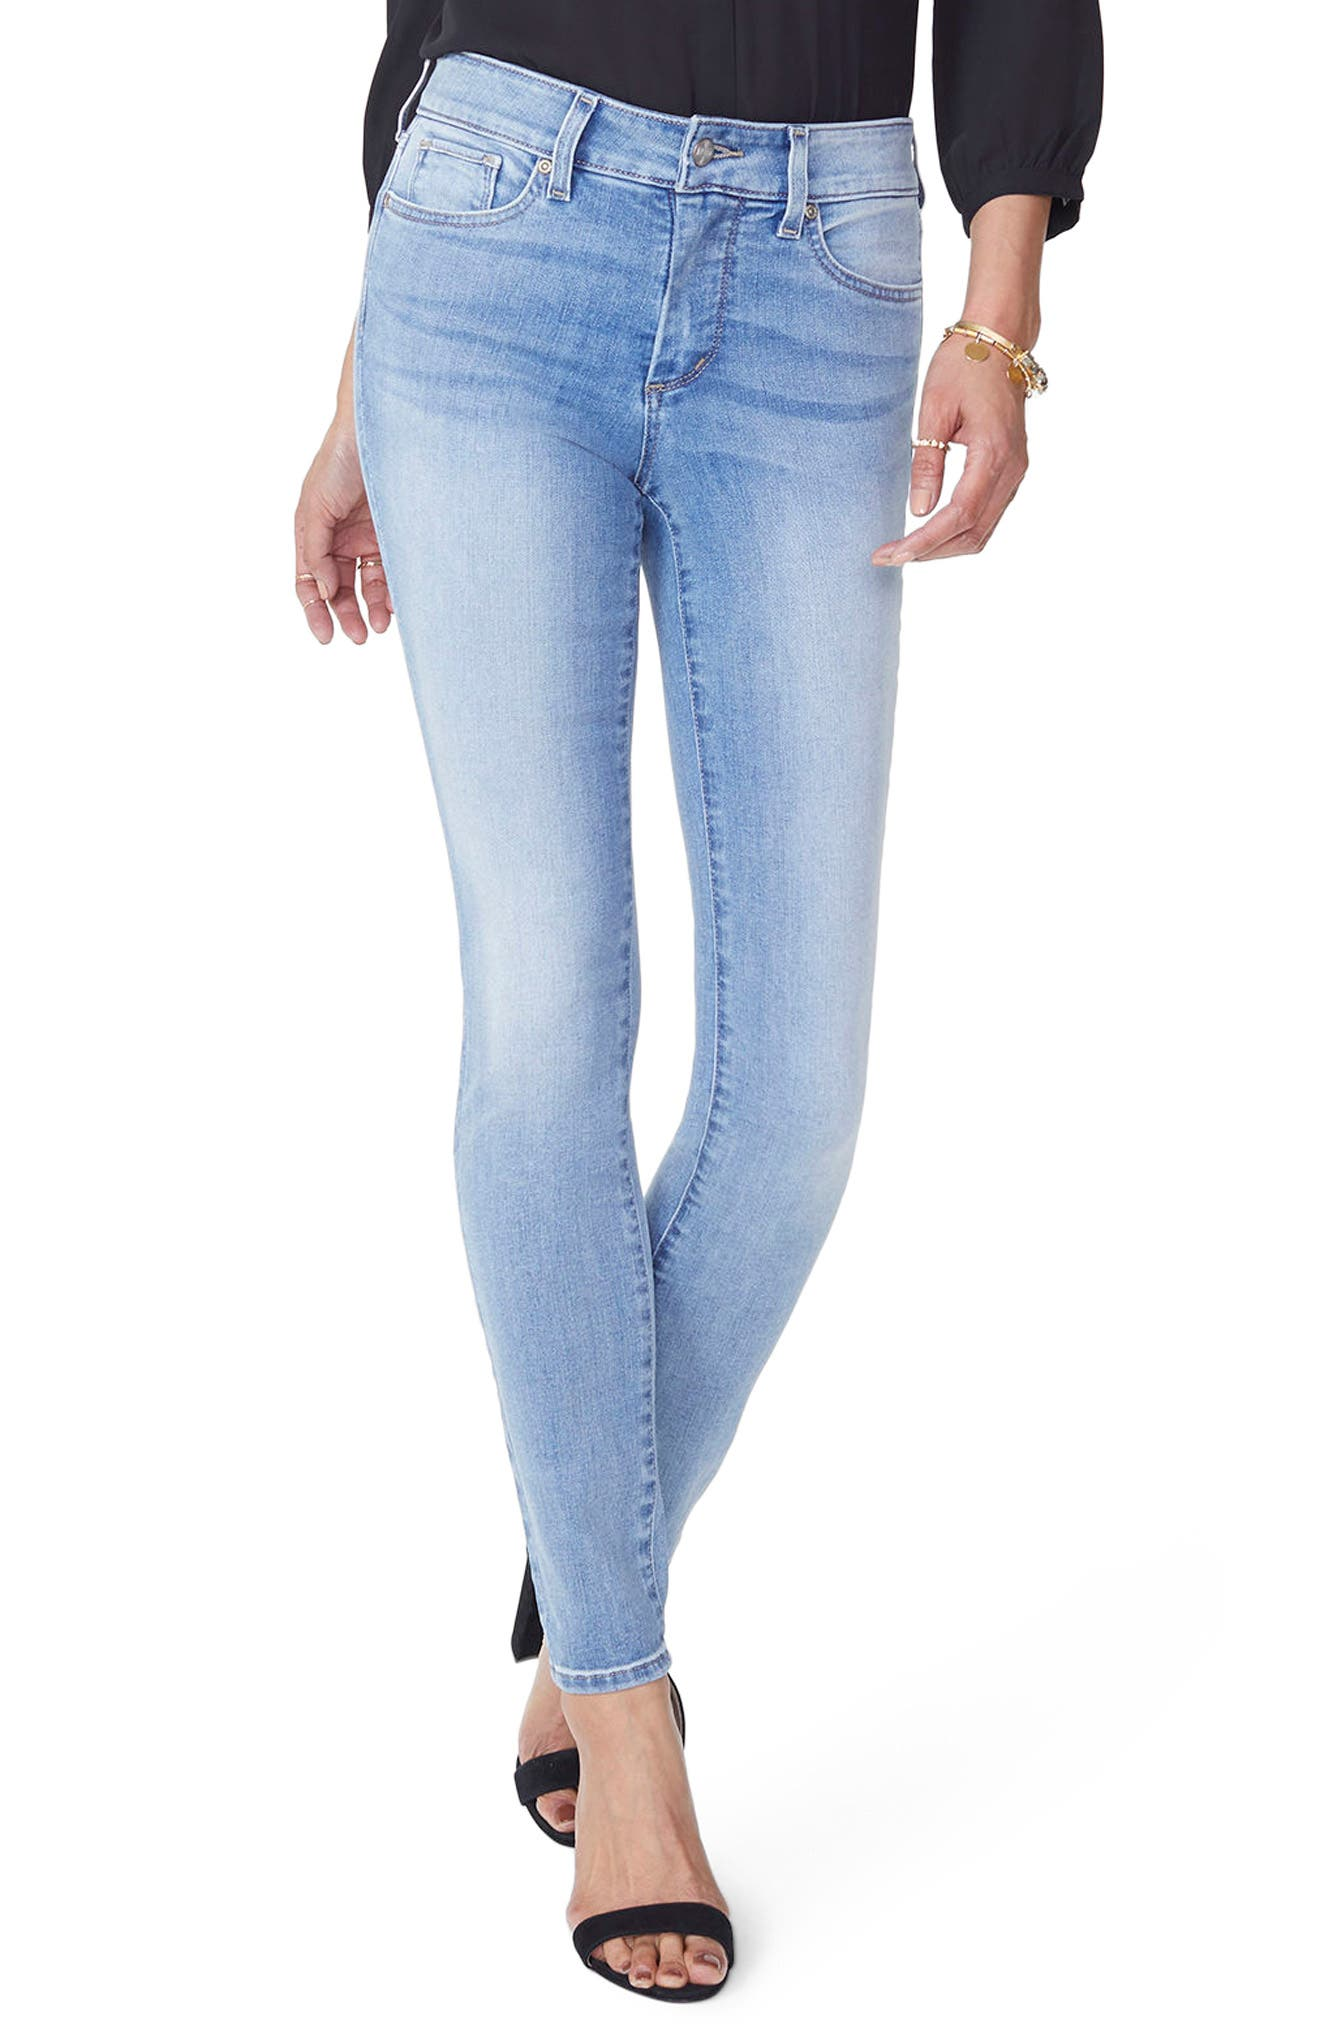 Ami Stretch Skinny Jeans,                             Main thumbnail 1, color,                             Dreamstate